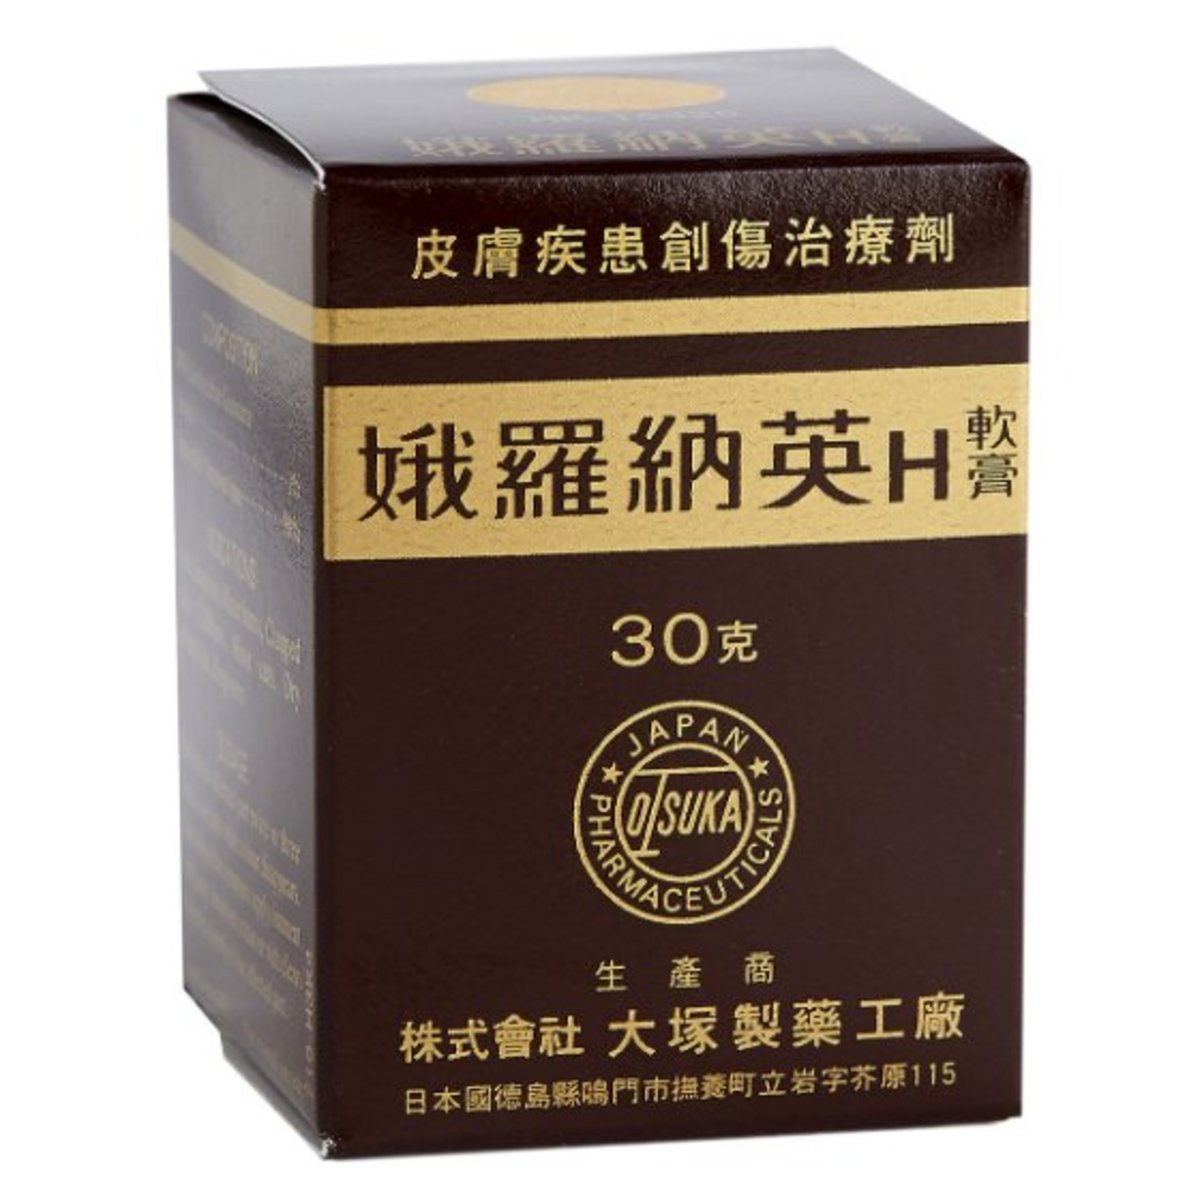 H Ointment30g